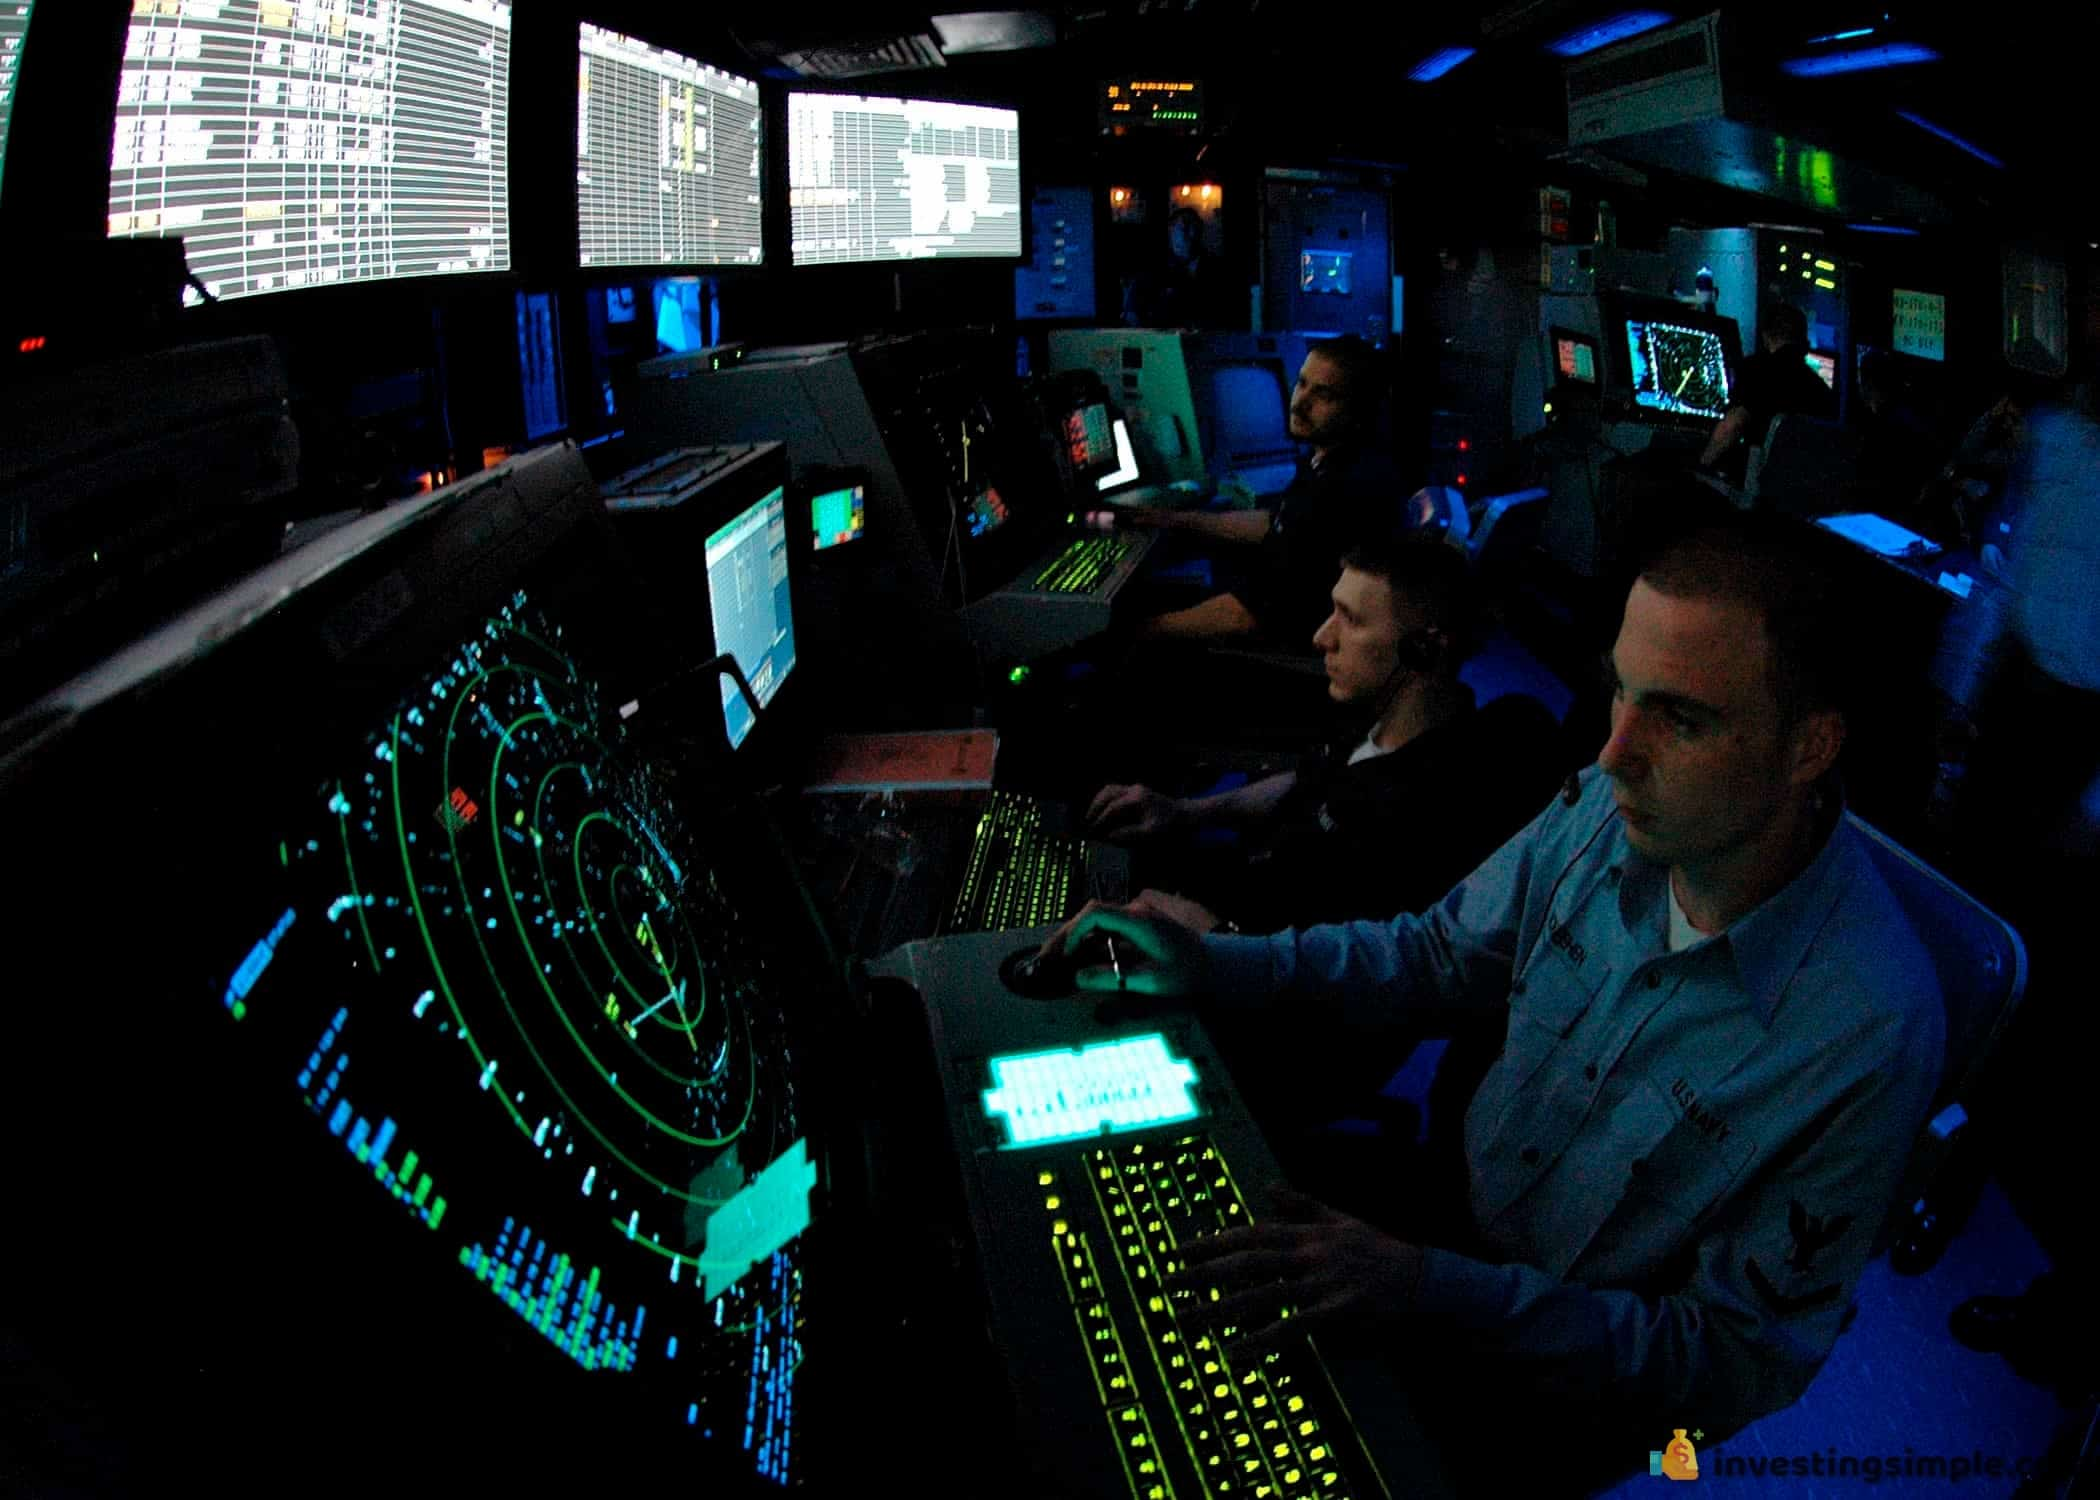 Through military training, you could make some serious money as an air traffic controller.